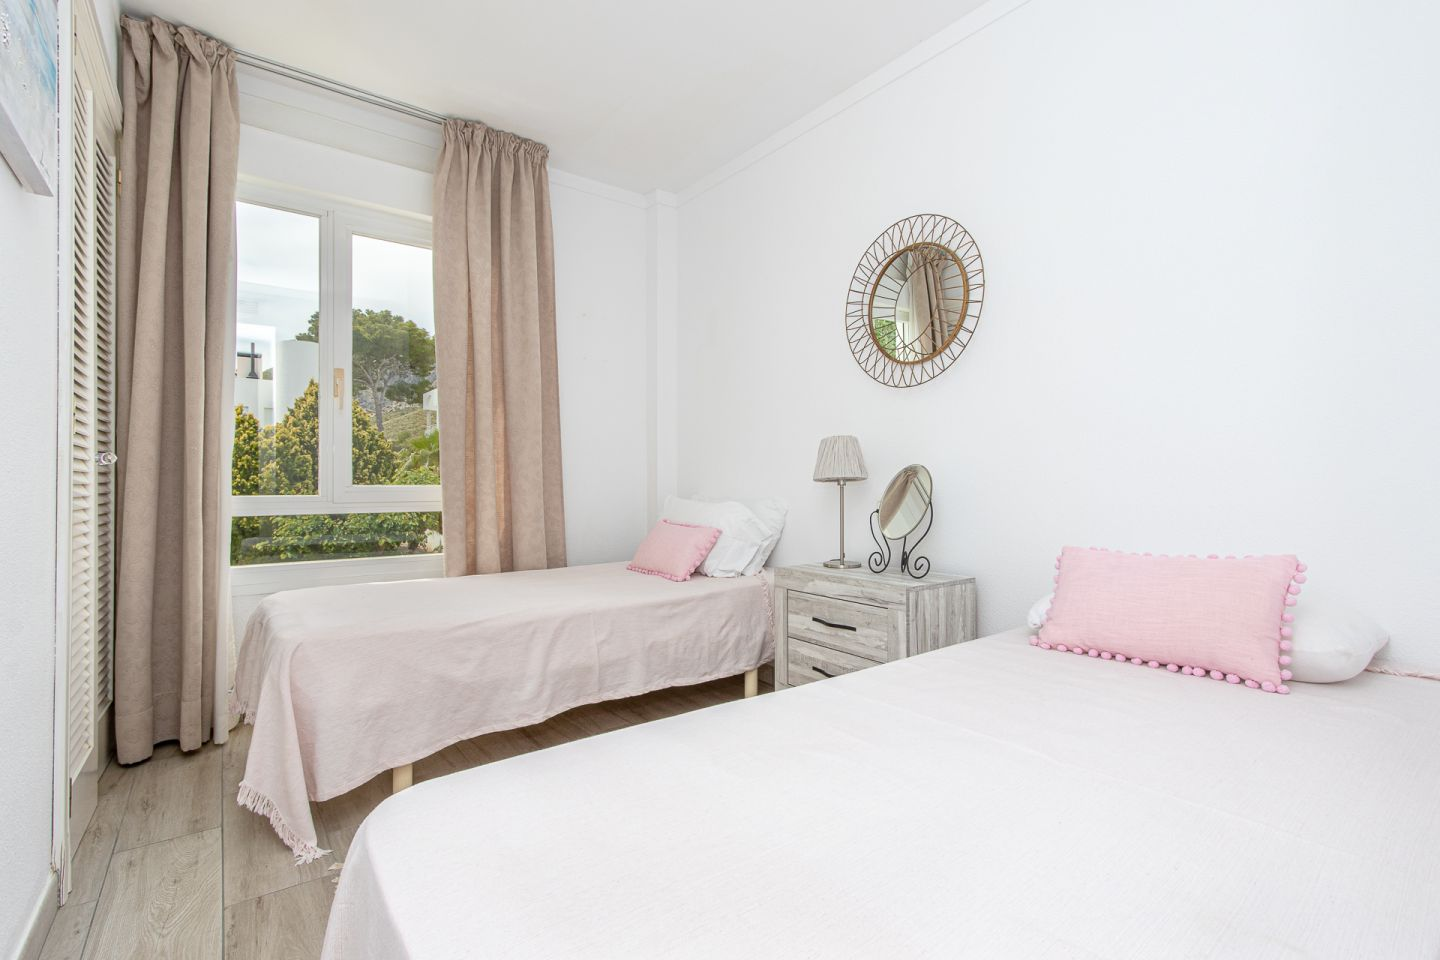 3 Bed Apartment for sale in Puerto Pollensa 11